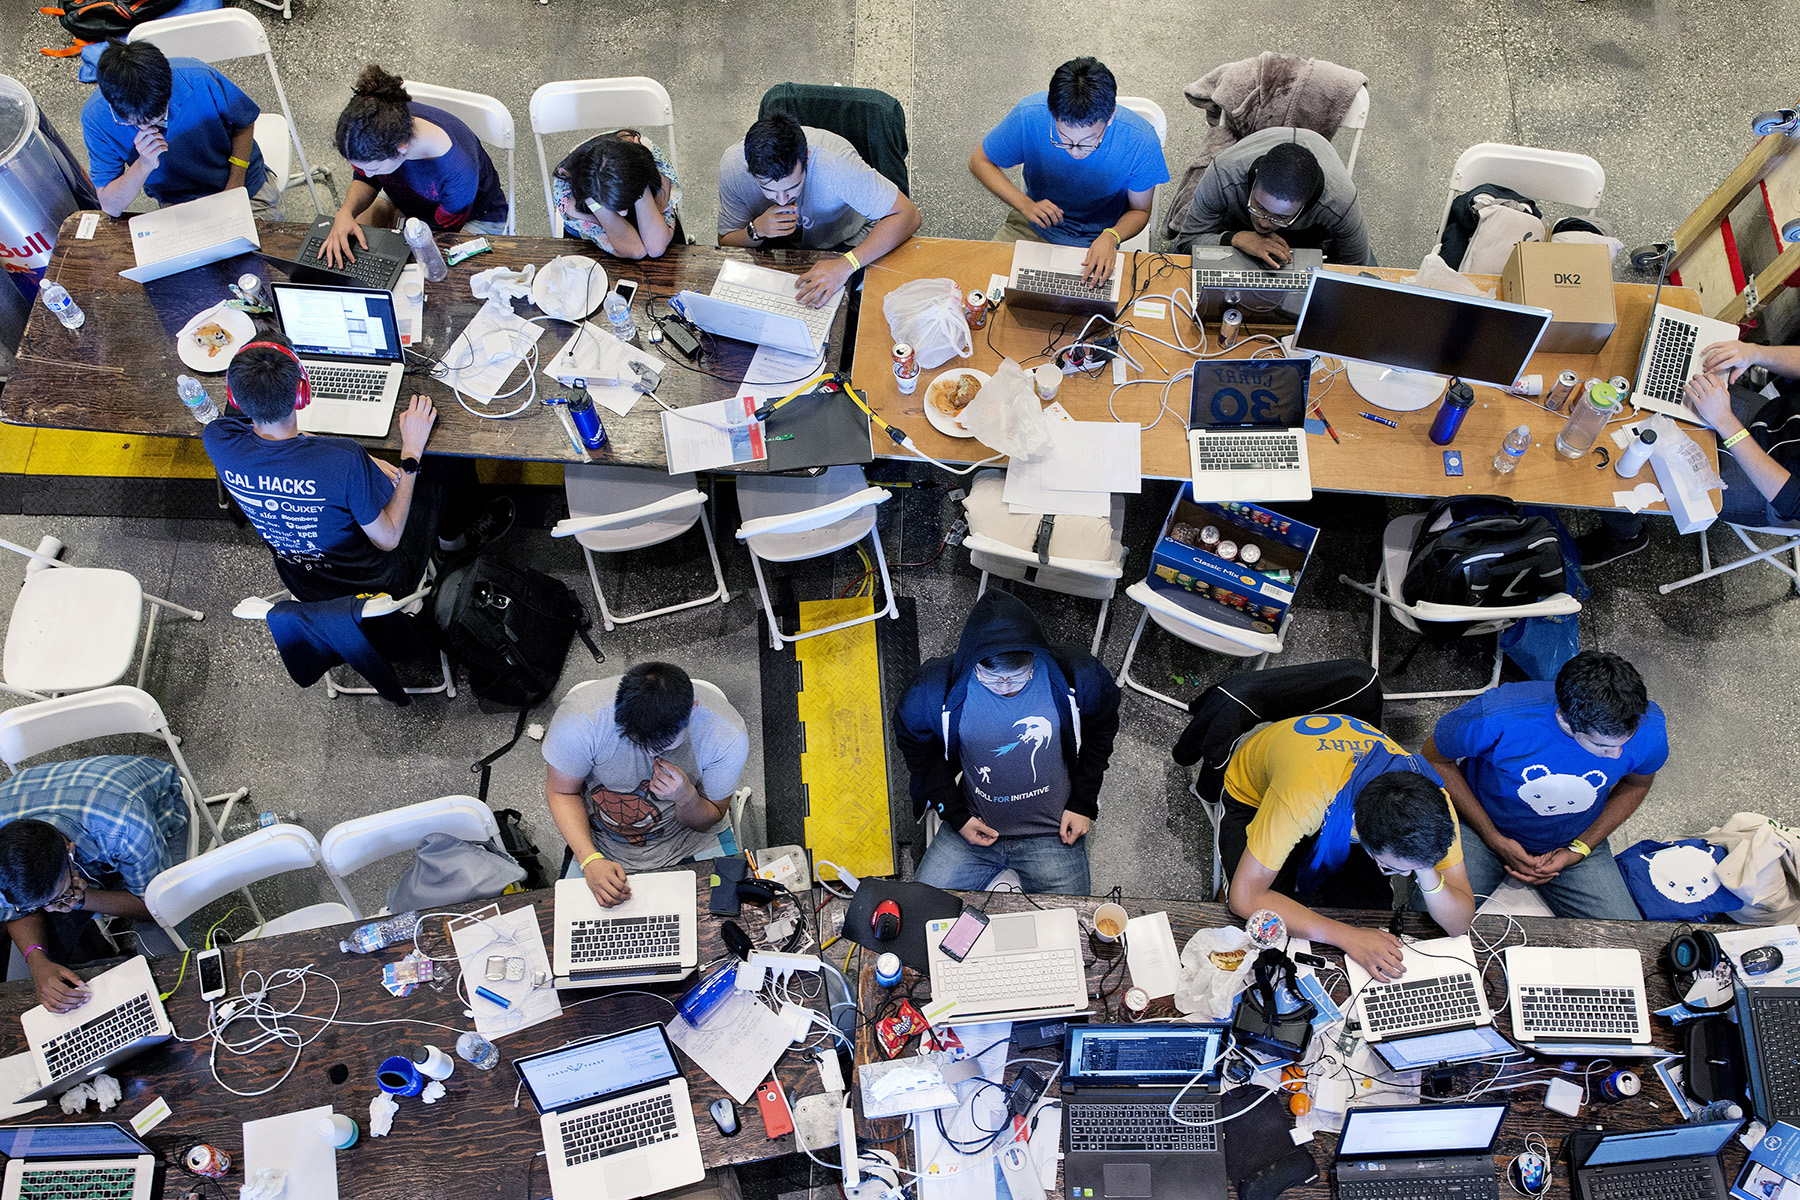 Participants in Cal Hacks 2.0, a 36-hour hackathon work on projects inside the football stadium at the University of California, Berkeley in Berkeley, Calif., in October 2015. According to the event organizers, 2,071 participants attended from 143 schools and 10 countries. Hackathons are events usually lasting a few days in which computer programmers and others involved in software and hardware development collaborate on a project over a set period of time, often while competing for awards and prizes. They're an important part of the technology industry ecosystem.